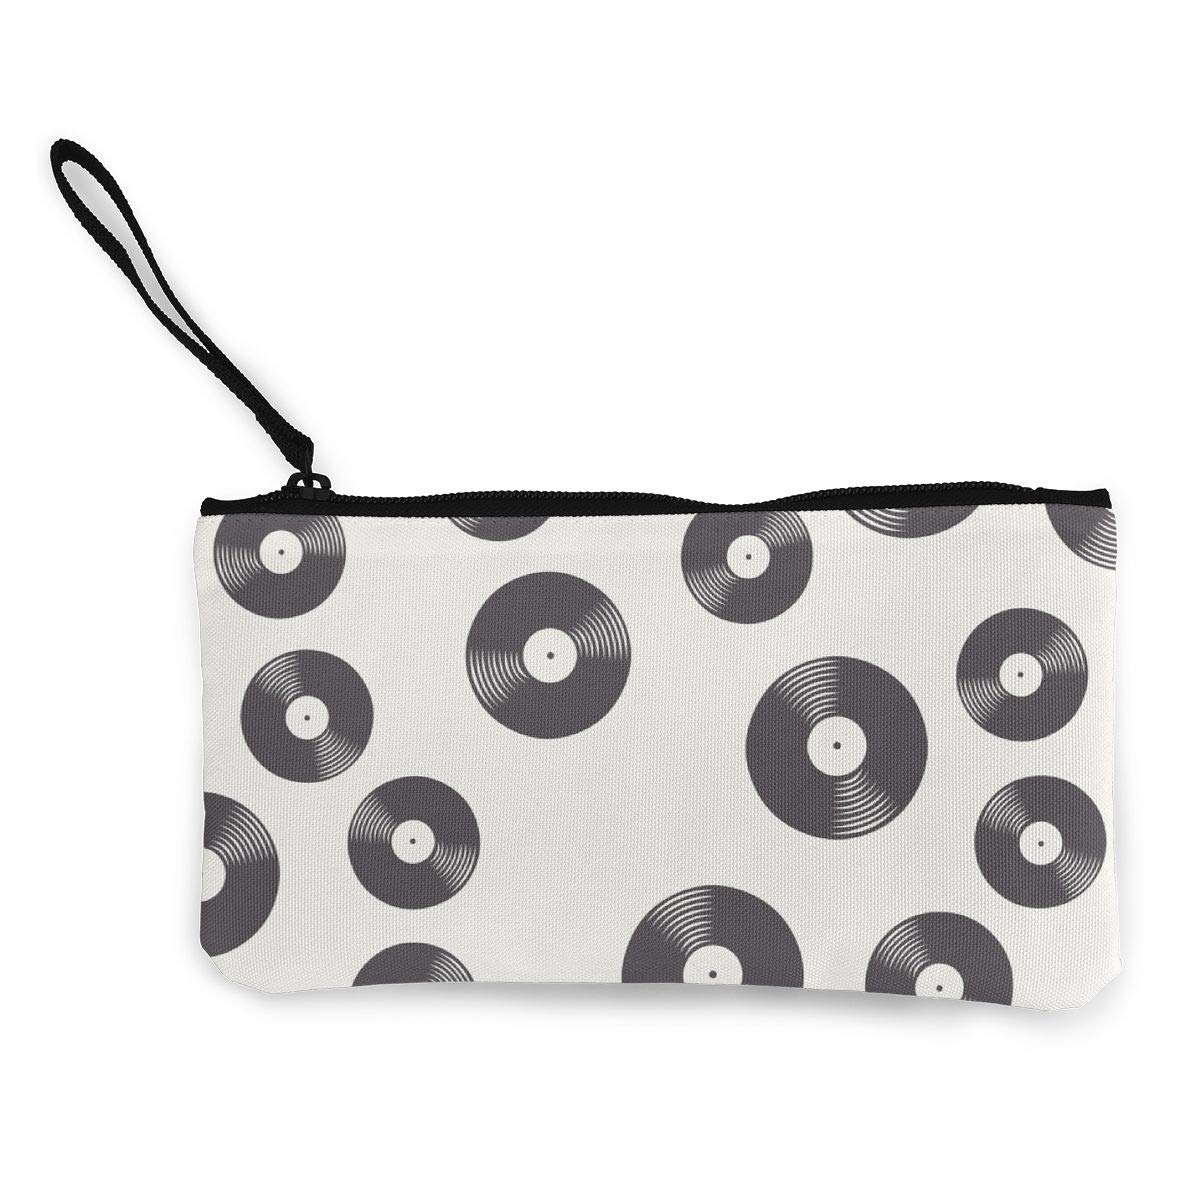 Vinyl Records White Pattern Canvas Coin Purse Small Cute Change Cash Bag with Zip